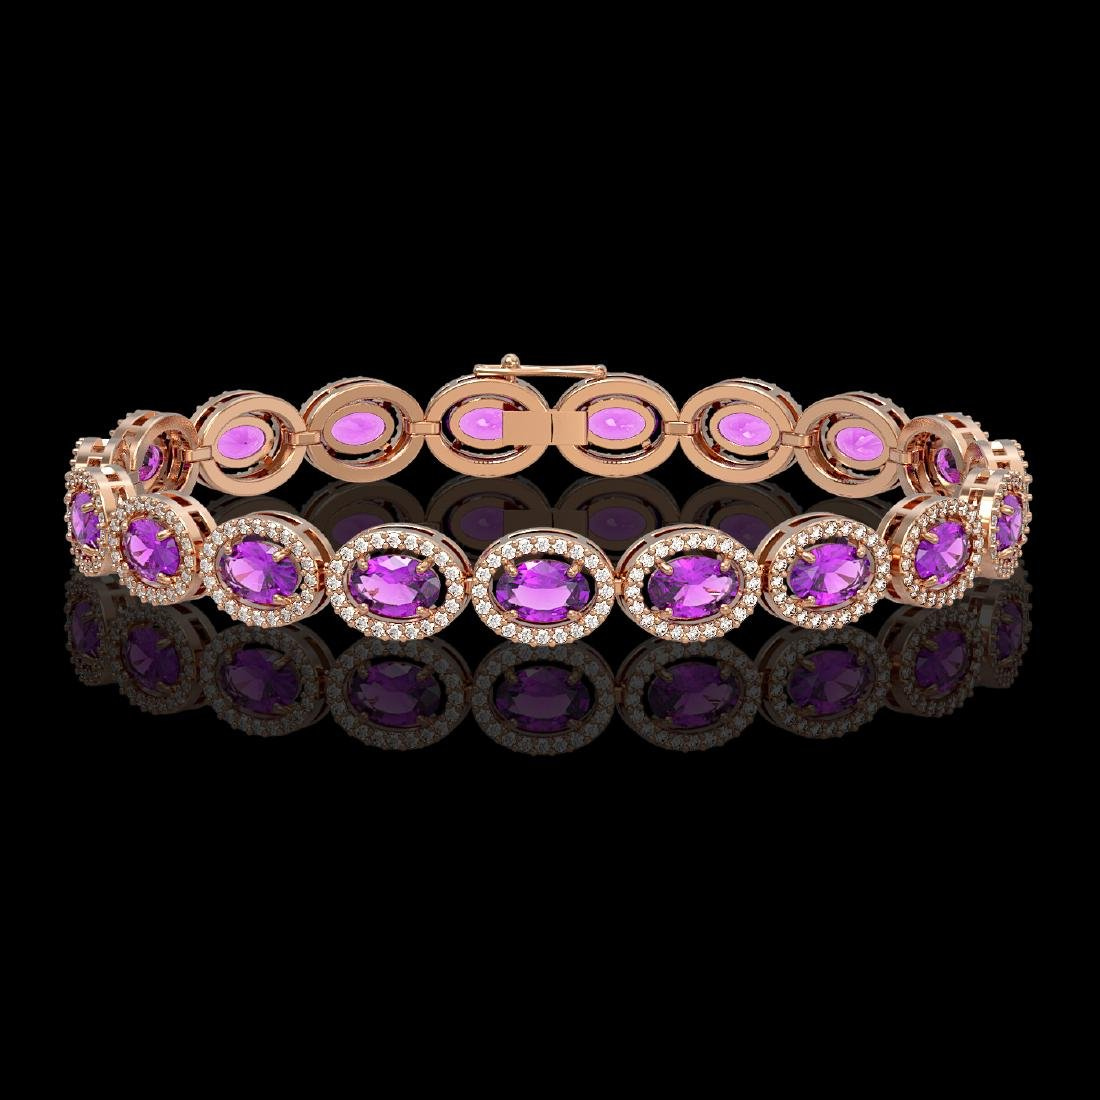 13.11 CTW Amethyst & Diamond Halo Bracelet 10K Rose